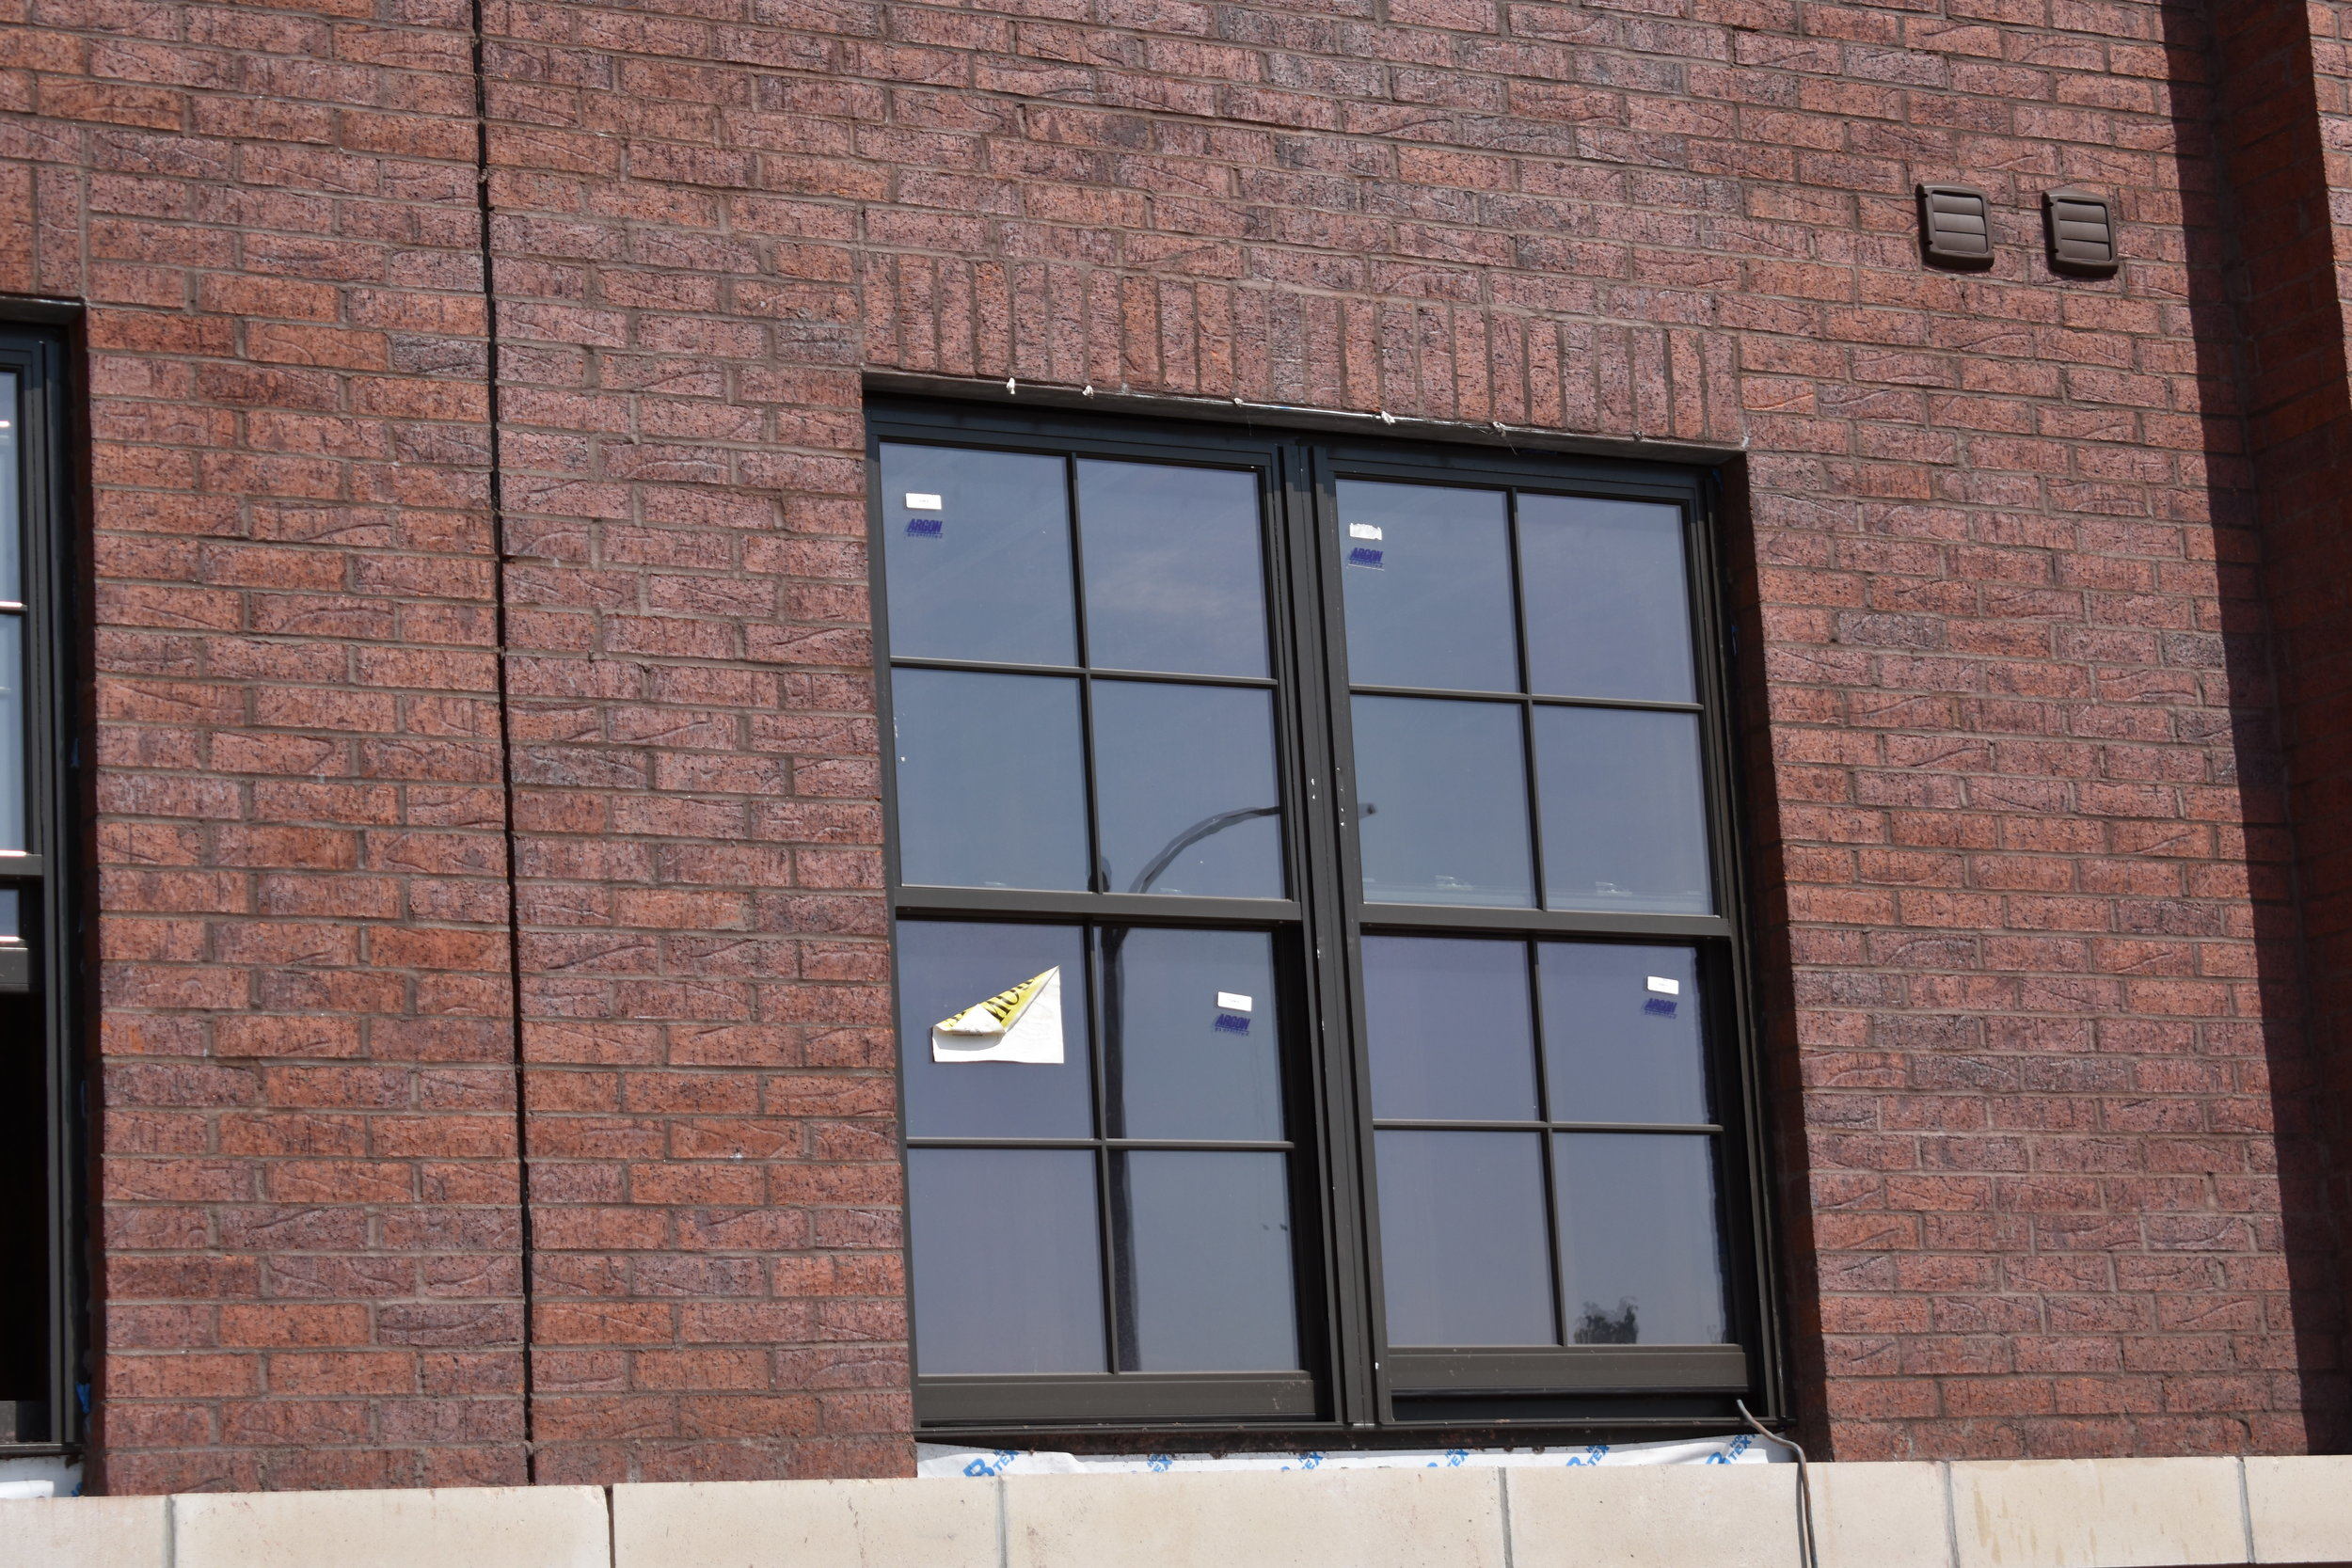 vertical brickwork above windows, texture/color of brick provides interest